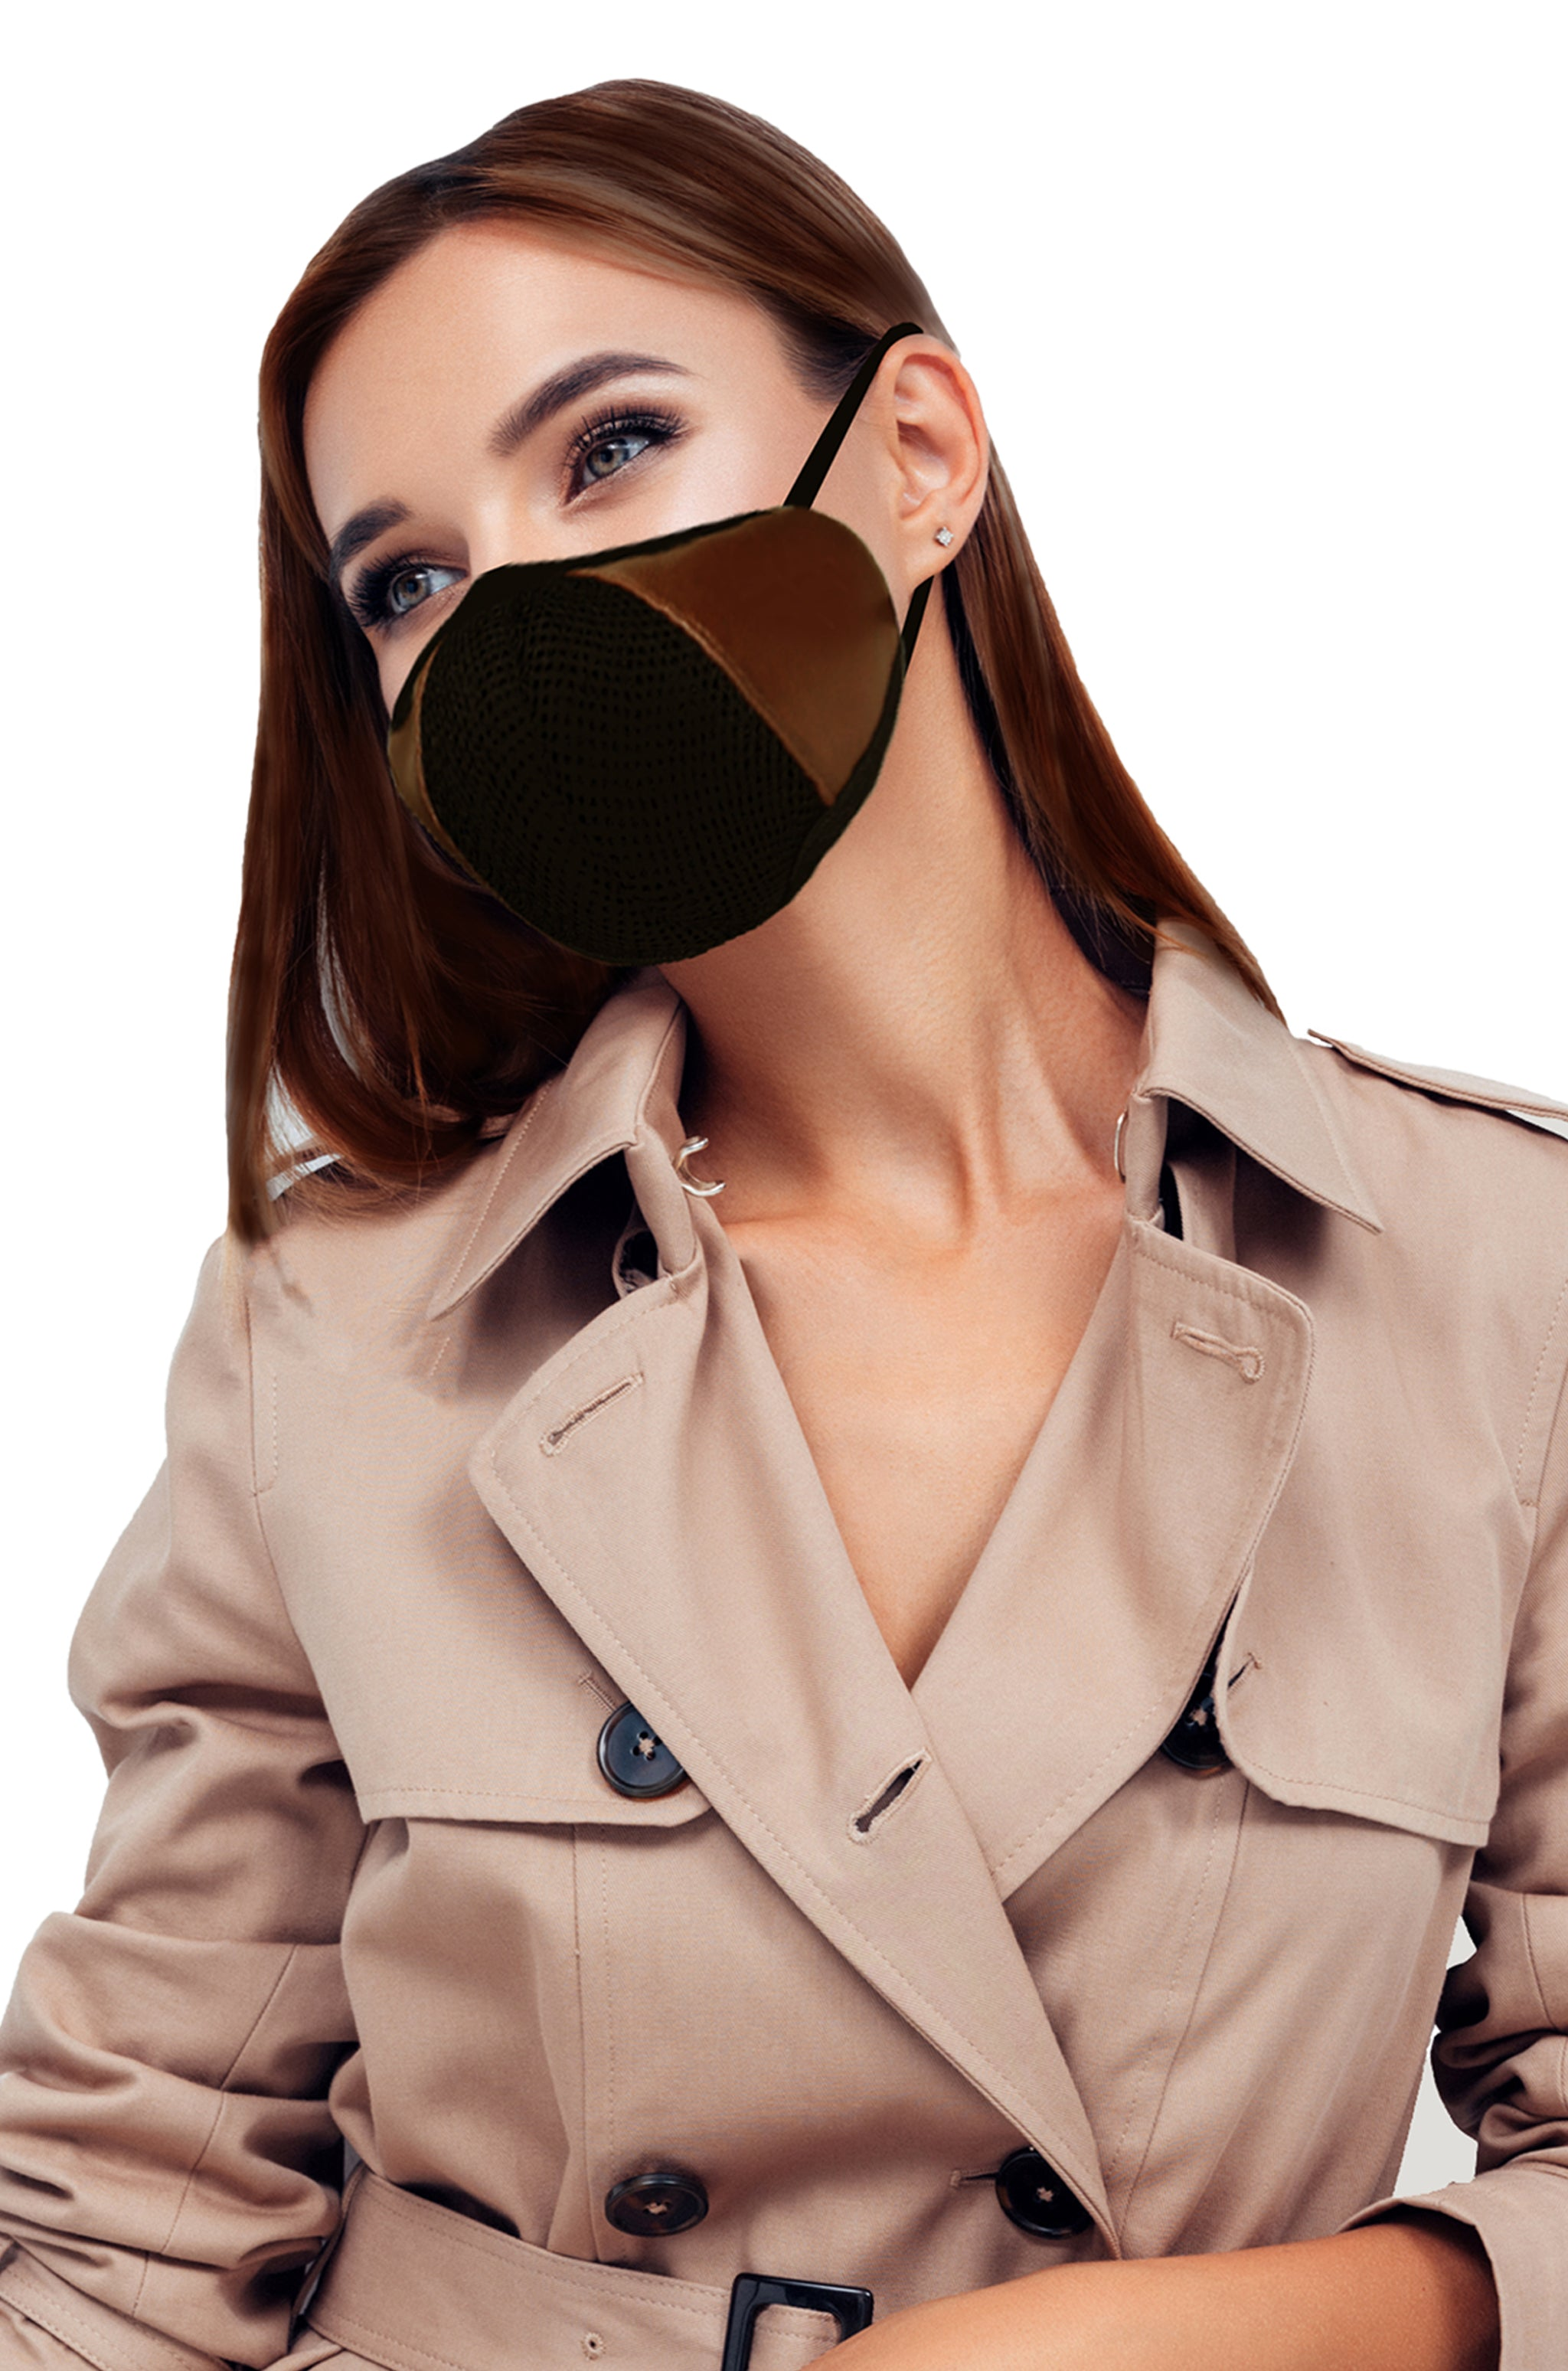 F Gear Luxur F95 Leatherette Mask Brown Safeguard 7 layer ISO CE SITRA lab certified >95% Bacteria Filtration